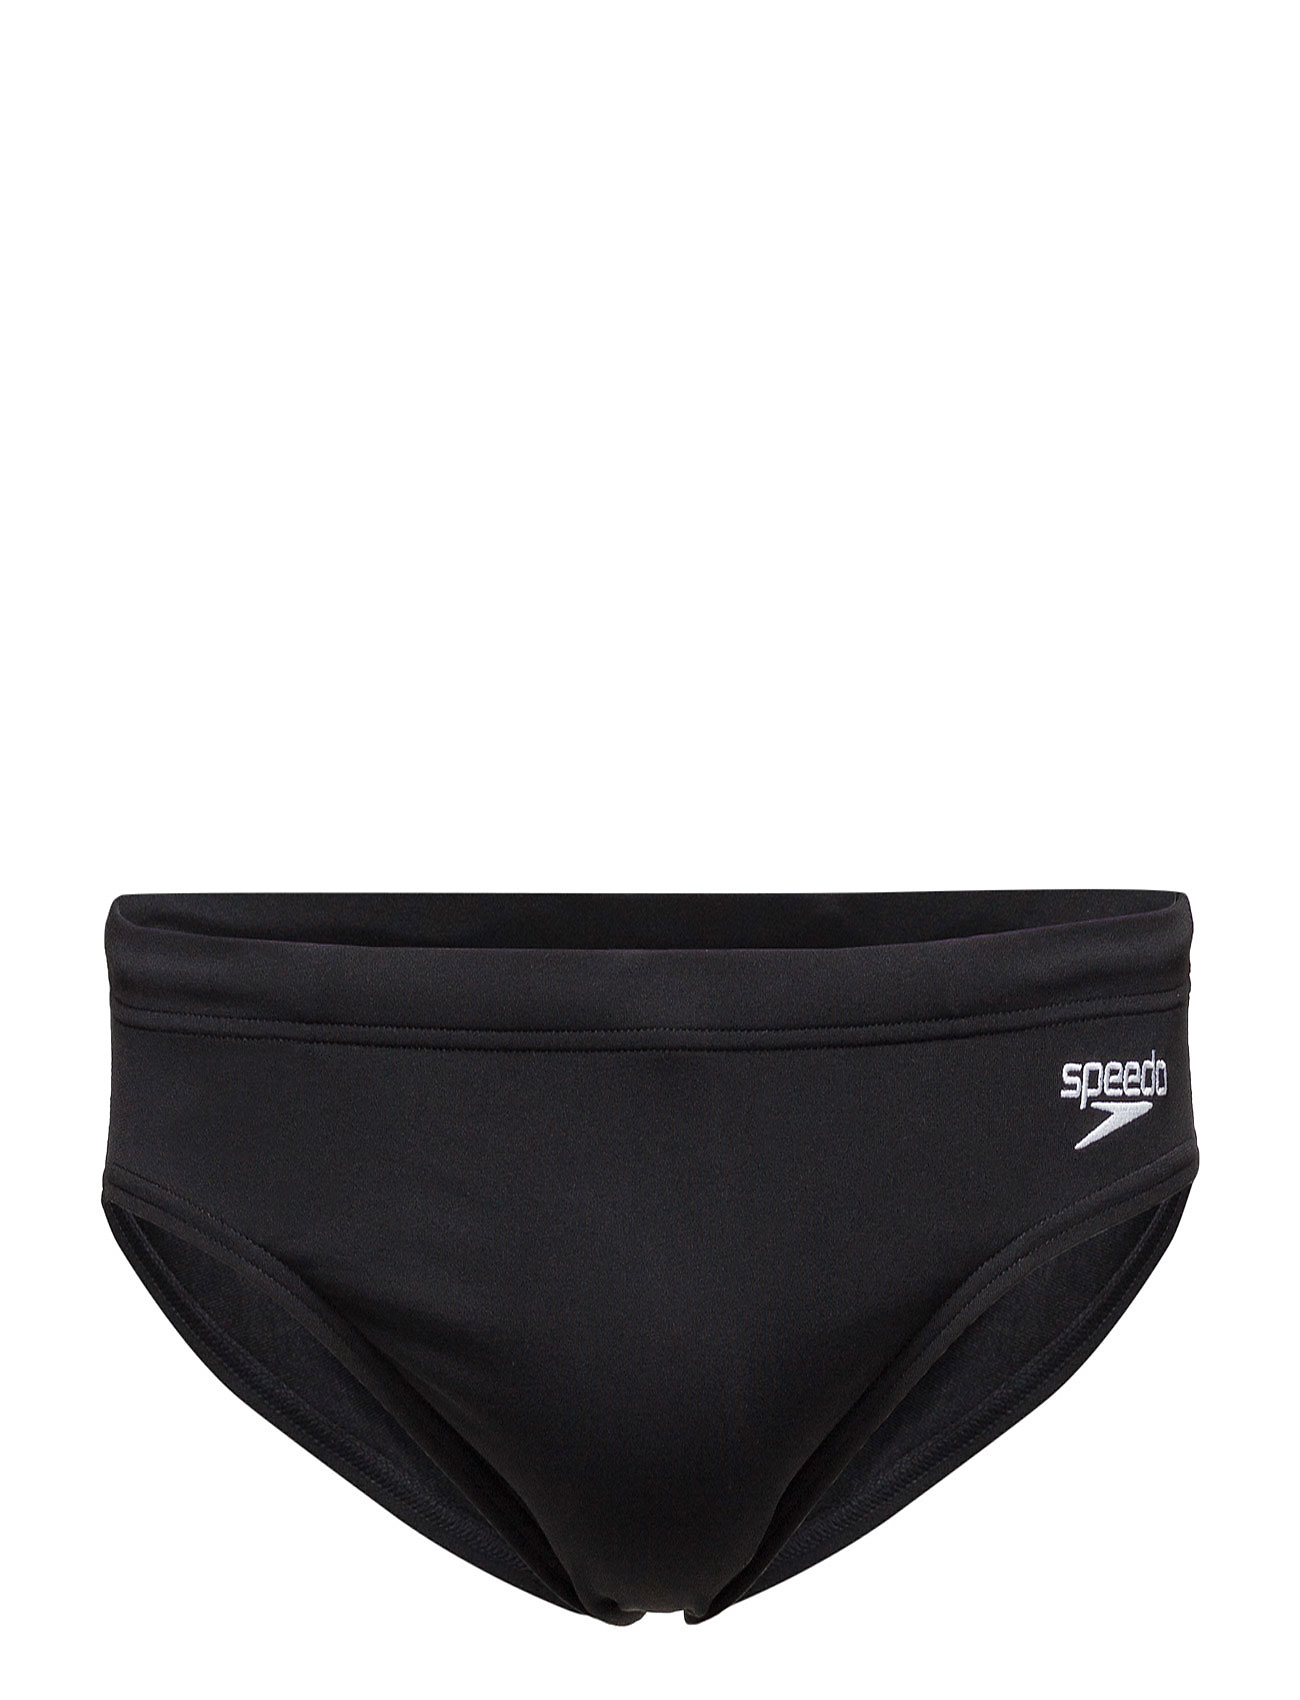 Speedo Essential End Sbrf Am, Black 1 Speedo Sports badetøj til Herrer i Sort